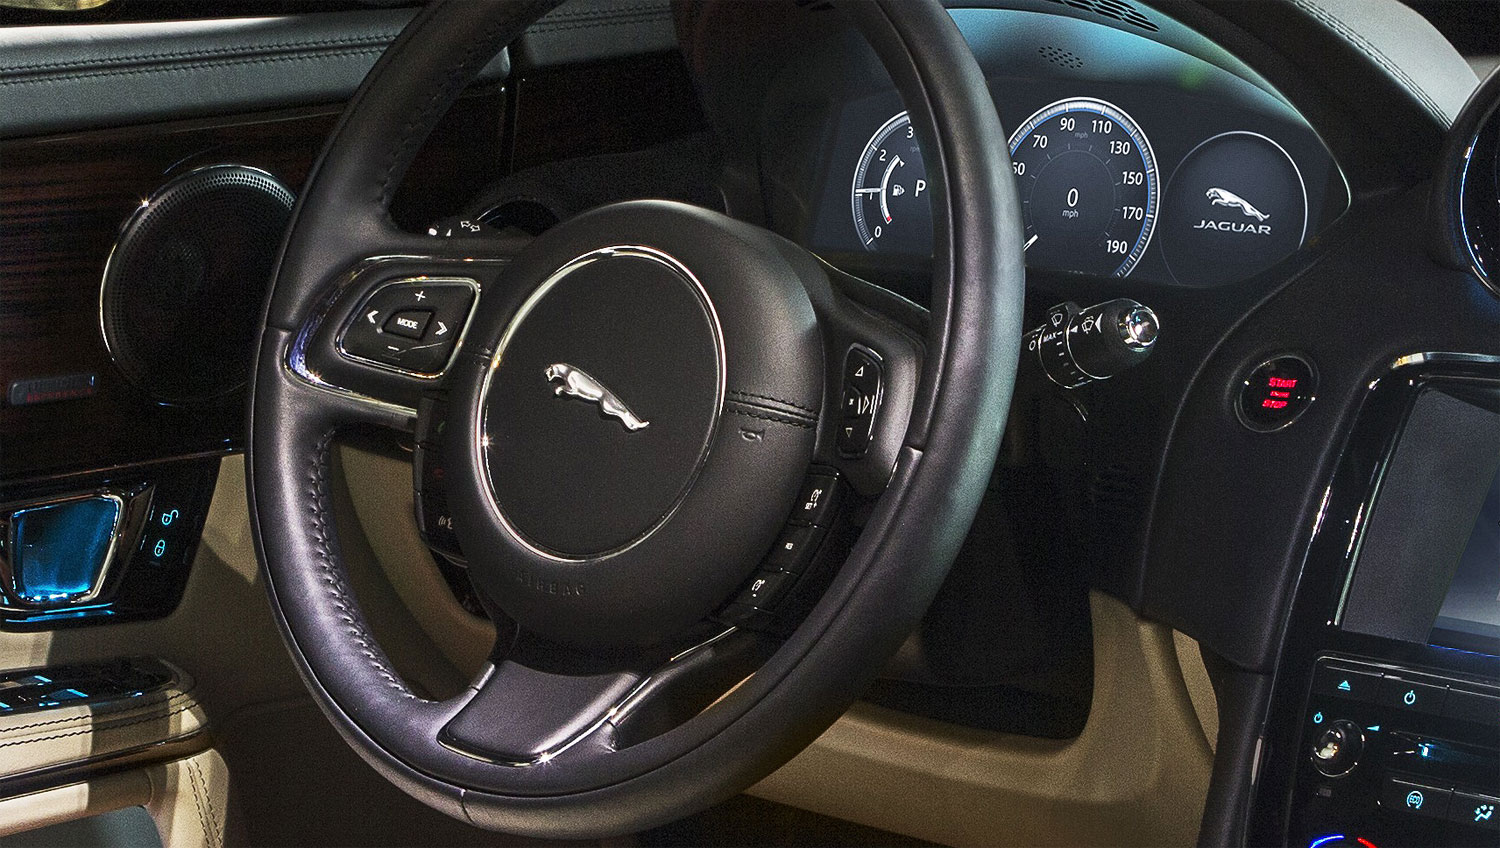 The new 2016 model year Jaguar XJ revealed